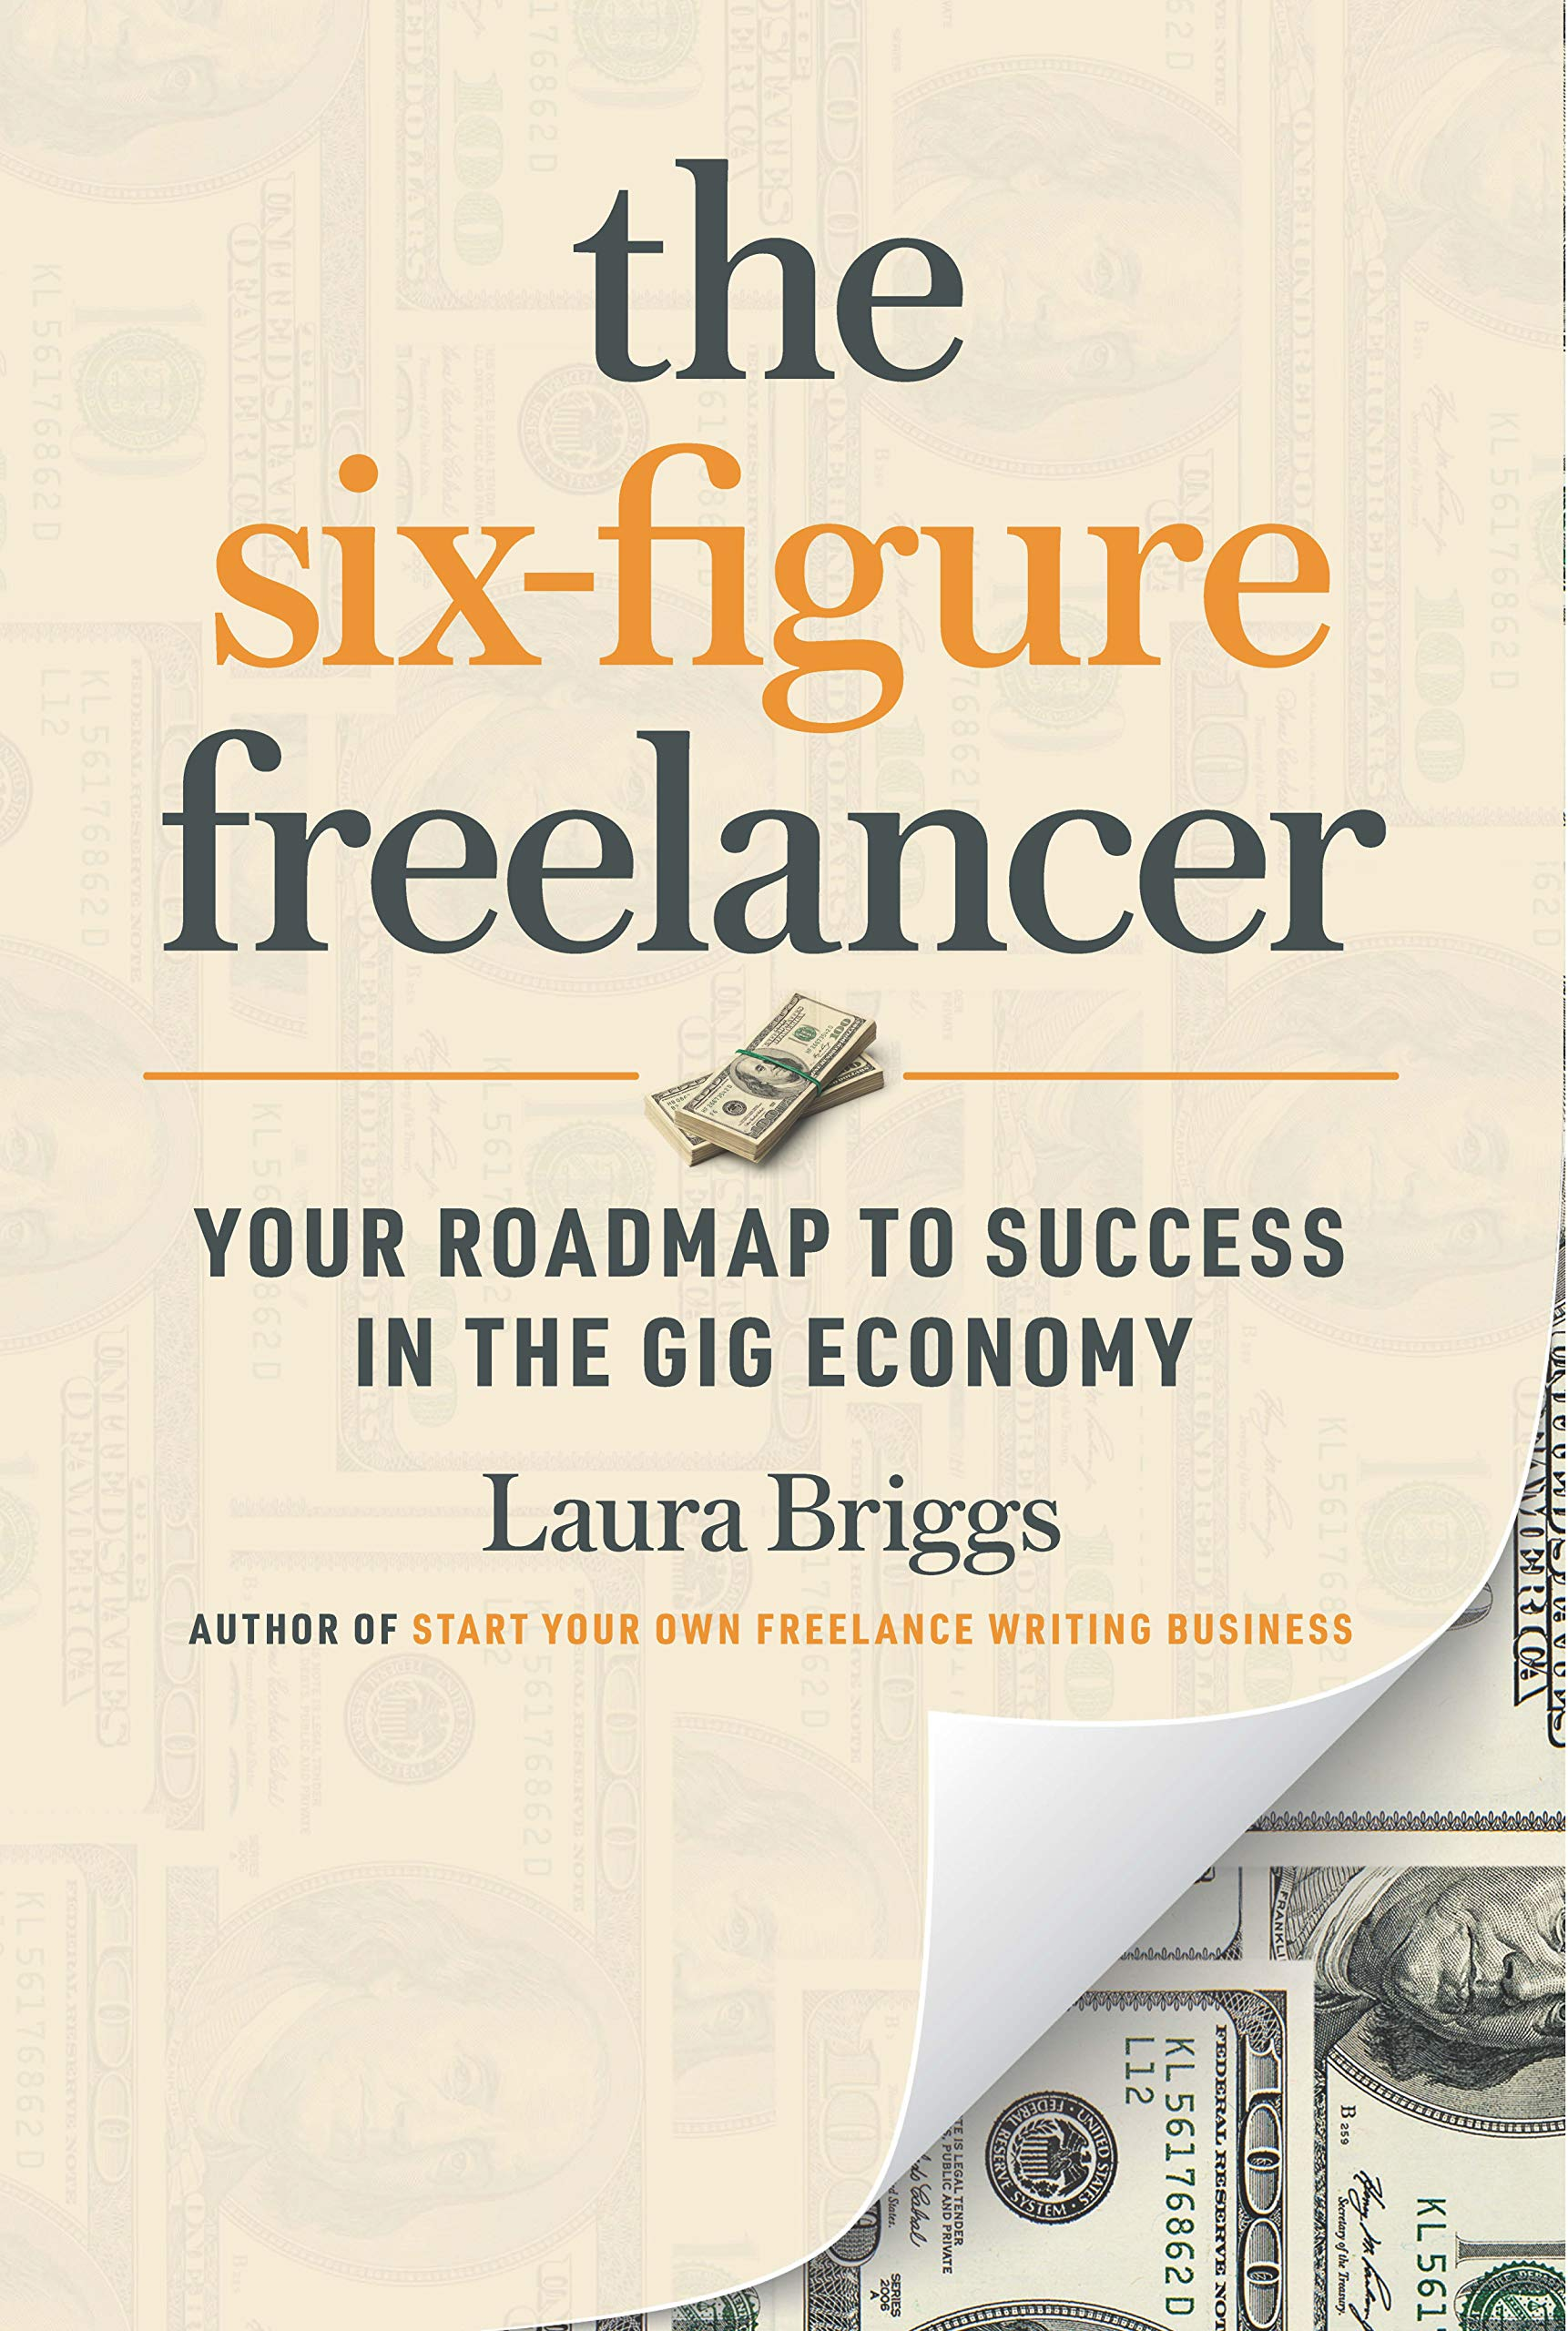 The Six-Figure Freelancer: Your Roadmap to Success in the Gig Economy